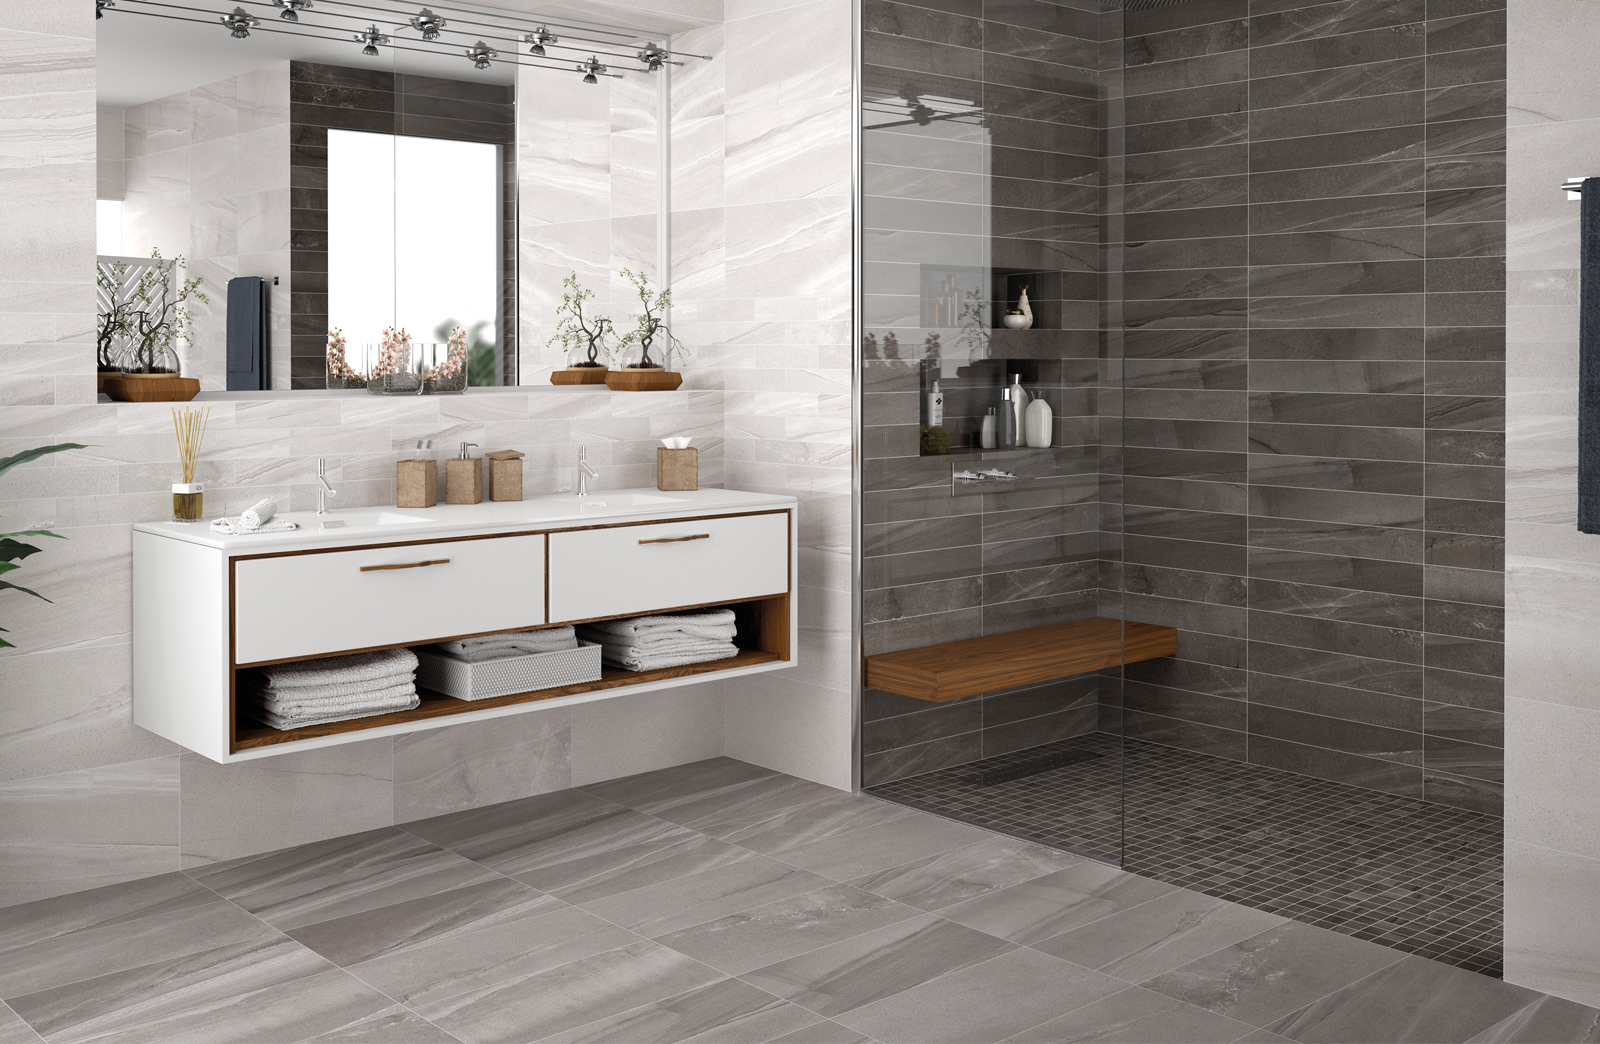 Euro Tile Ottawa >> euro-tile-stone-burlington-grey-bathroom - Euro Tile